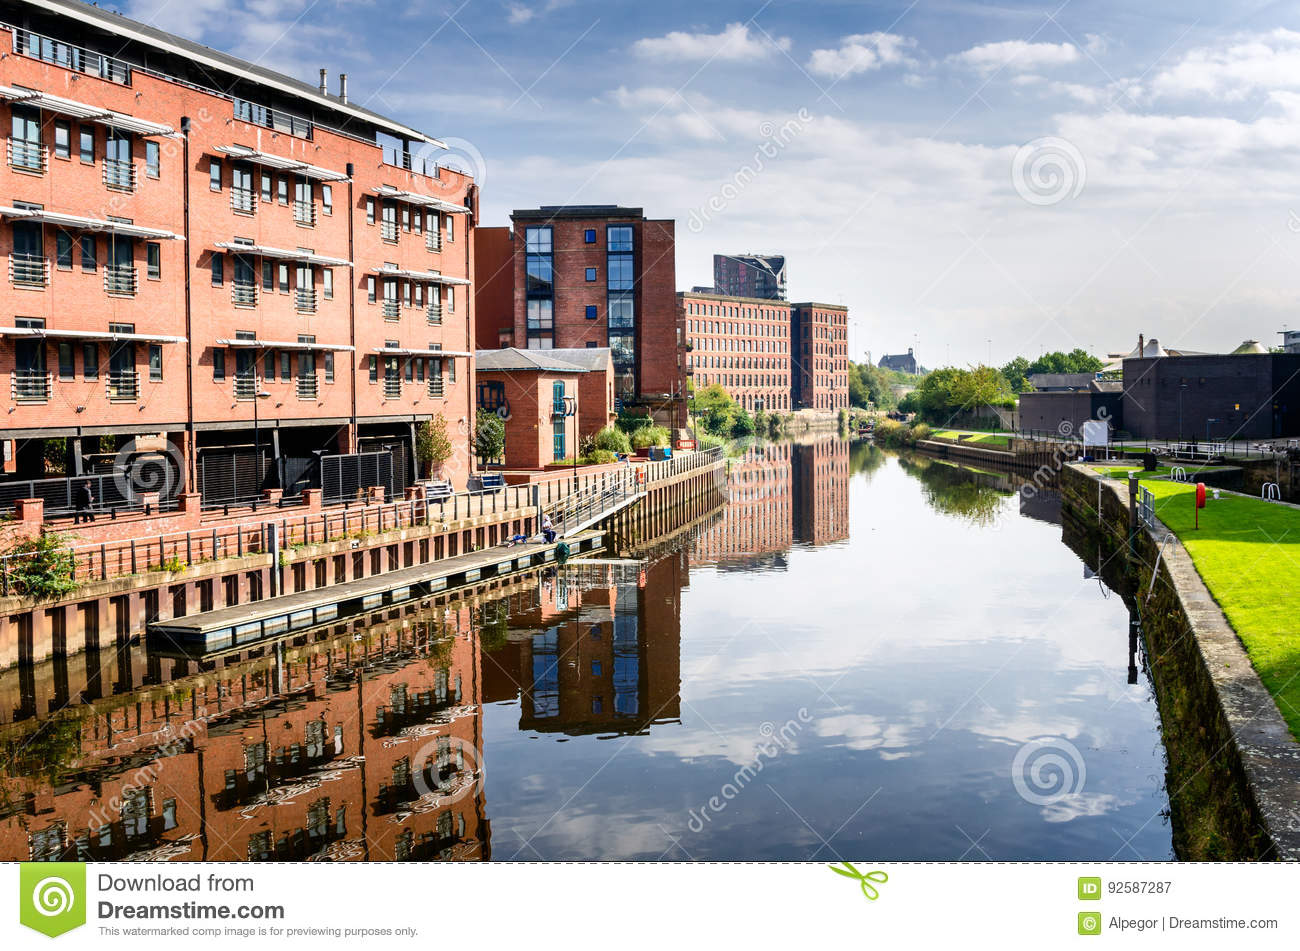 Red Brik Buildings alongside a River and Blue Sky with Clouds